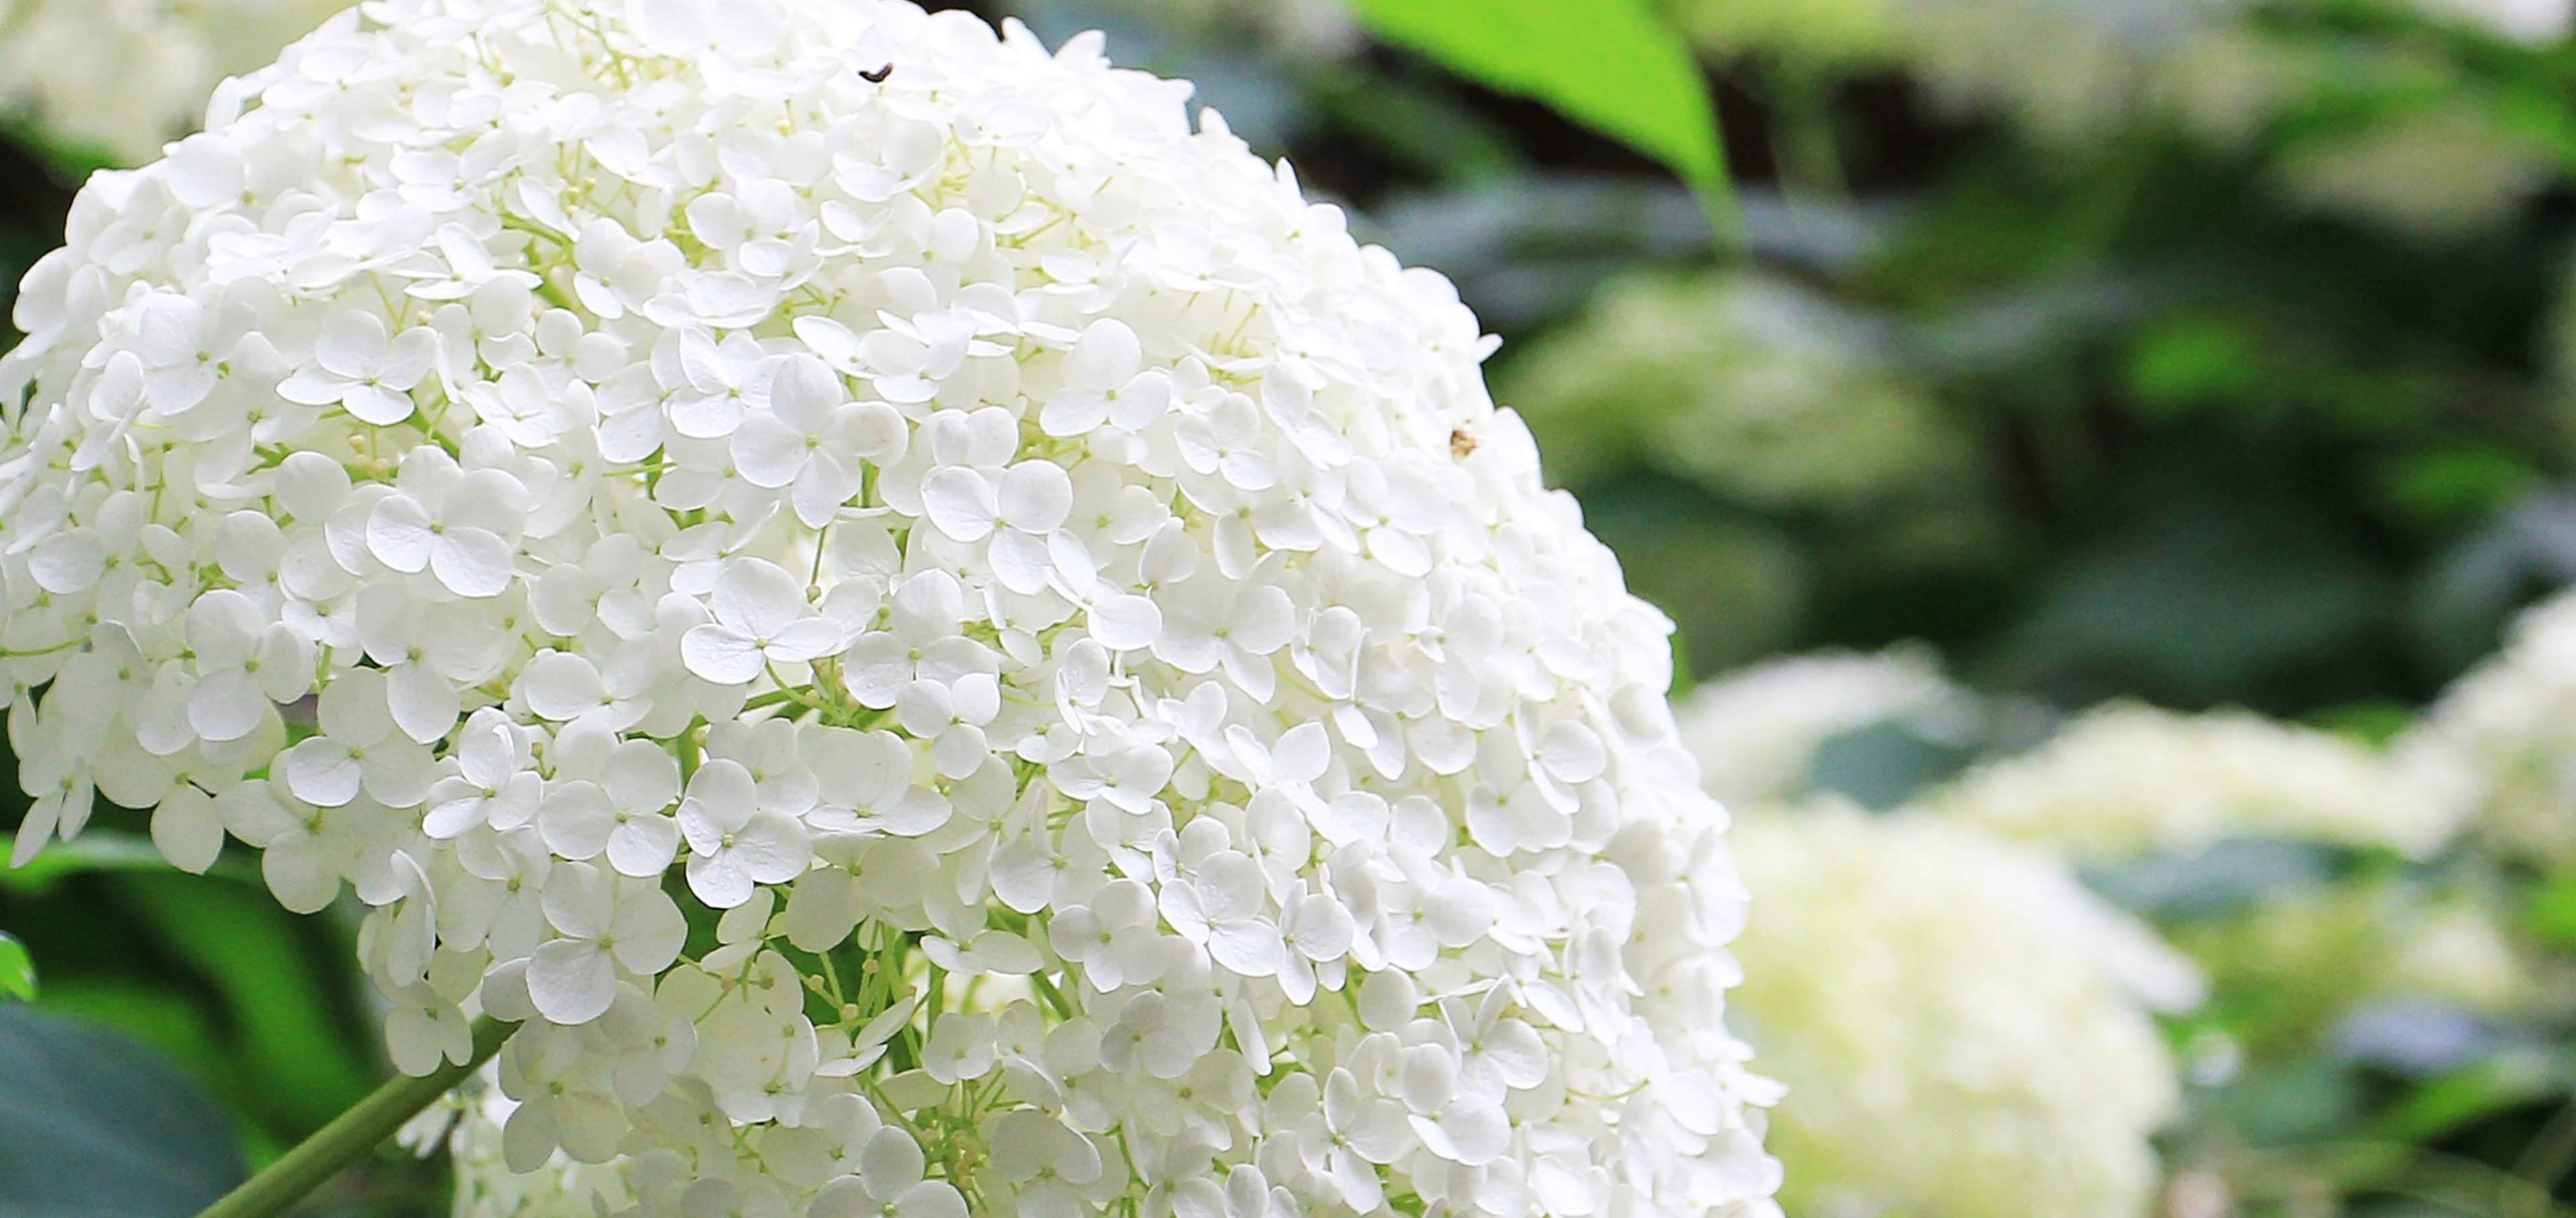 3840x1816 background image, flora, flower, flowers, garden, hydrangea, hydrangea  flower, nature, ornamental flower, ornamental plant, ornamental shrub,  plant, ...